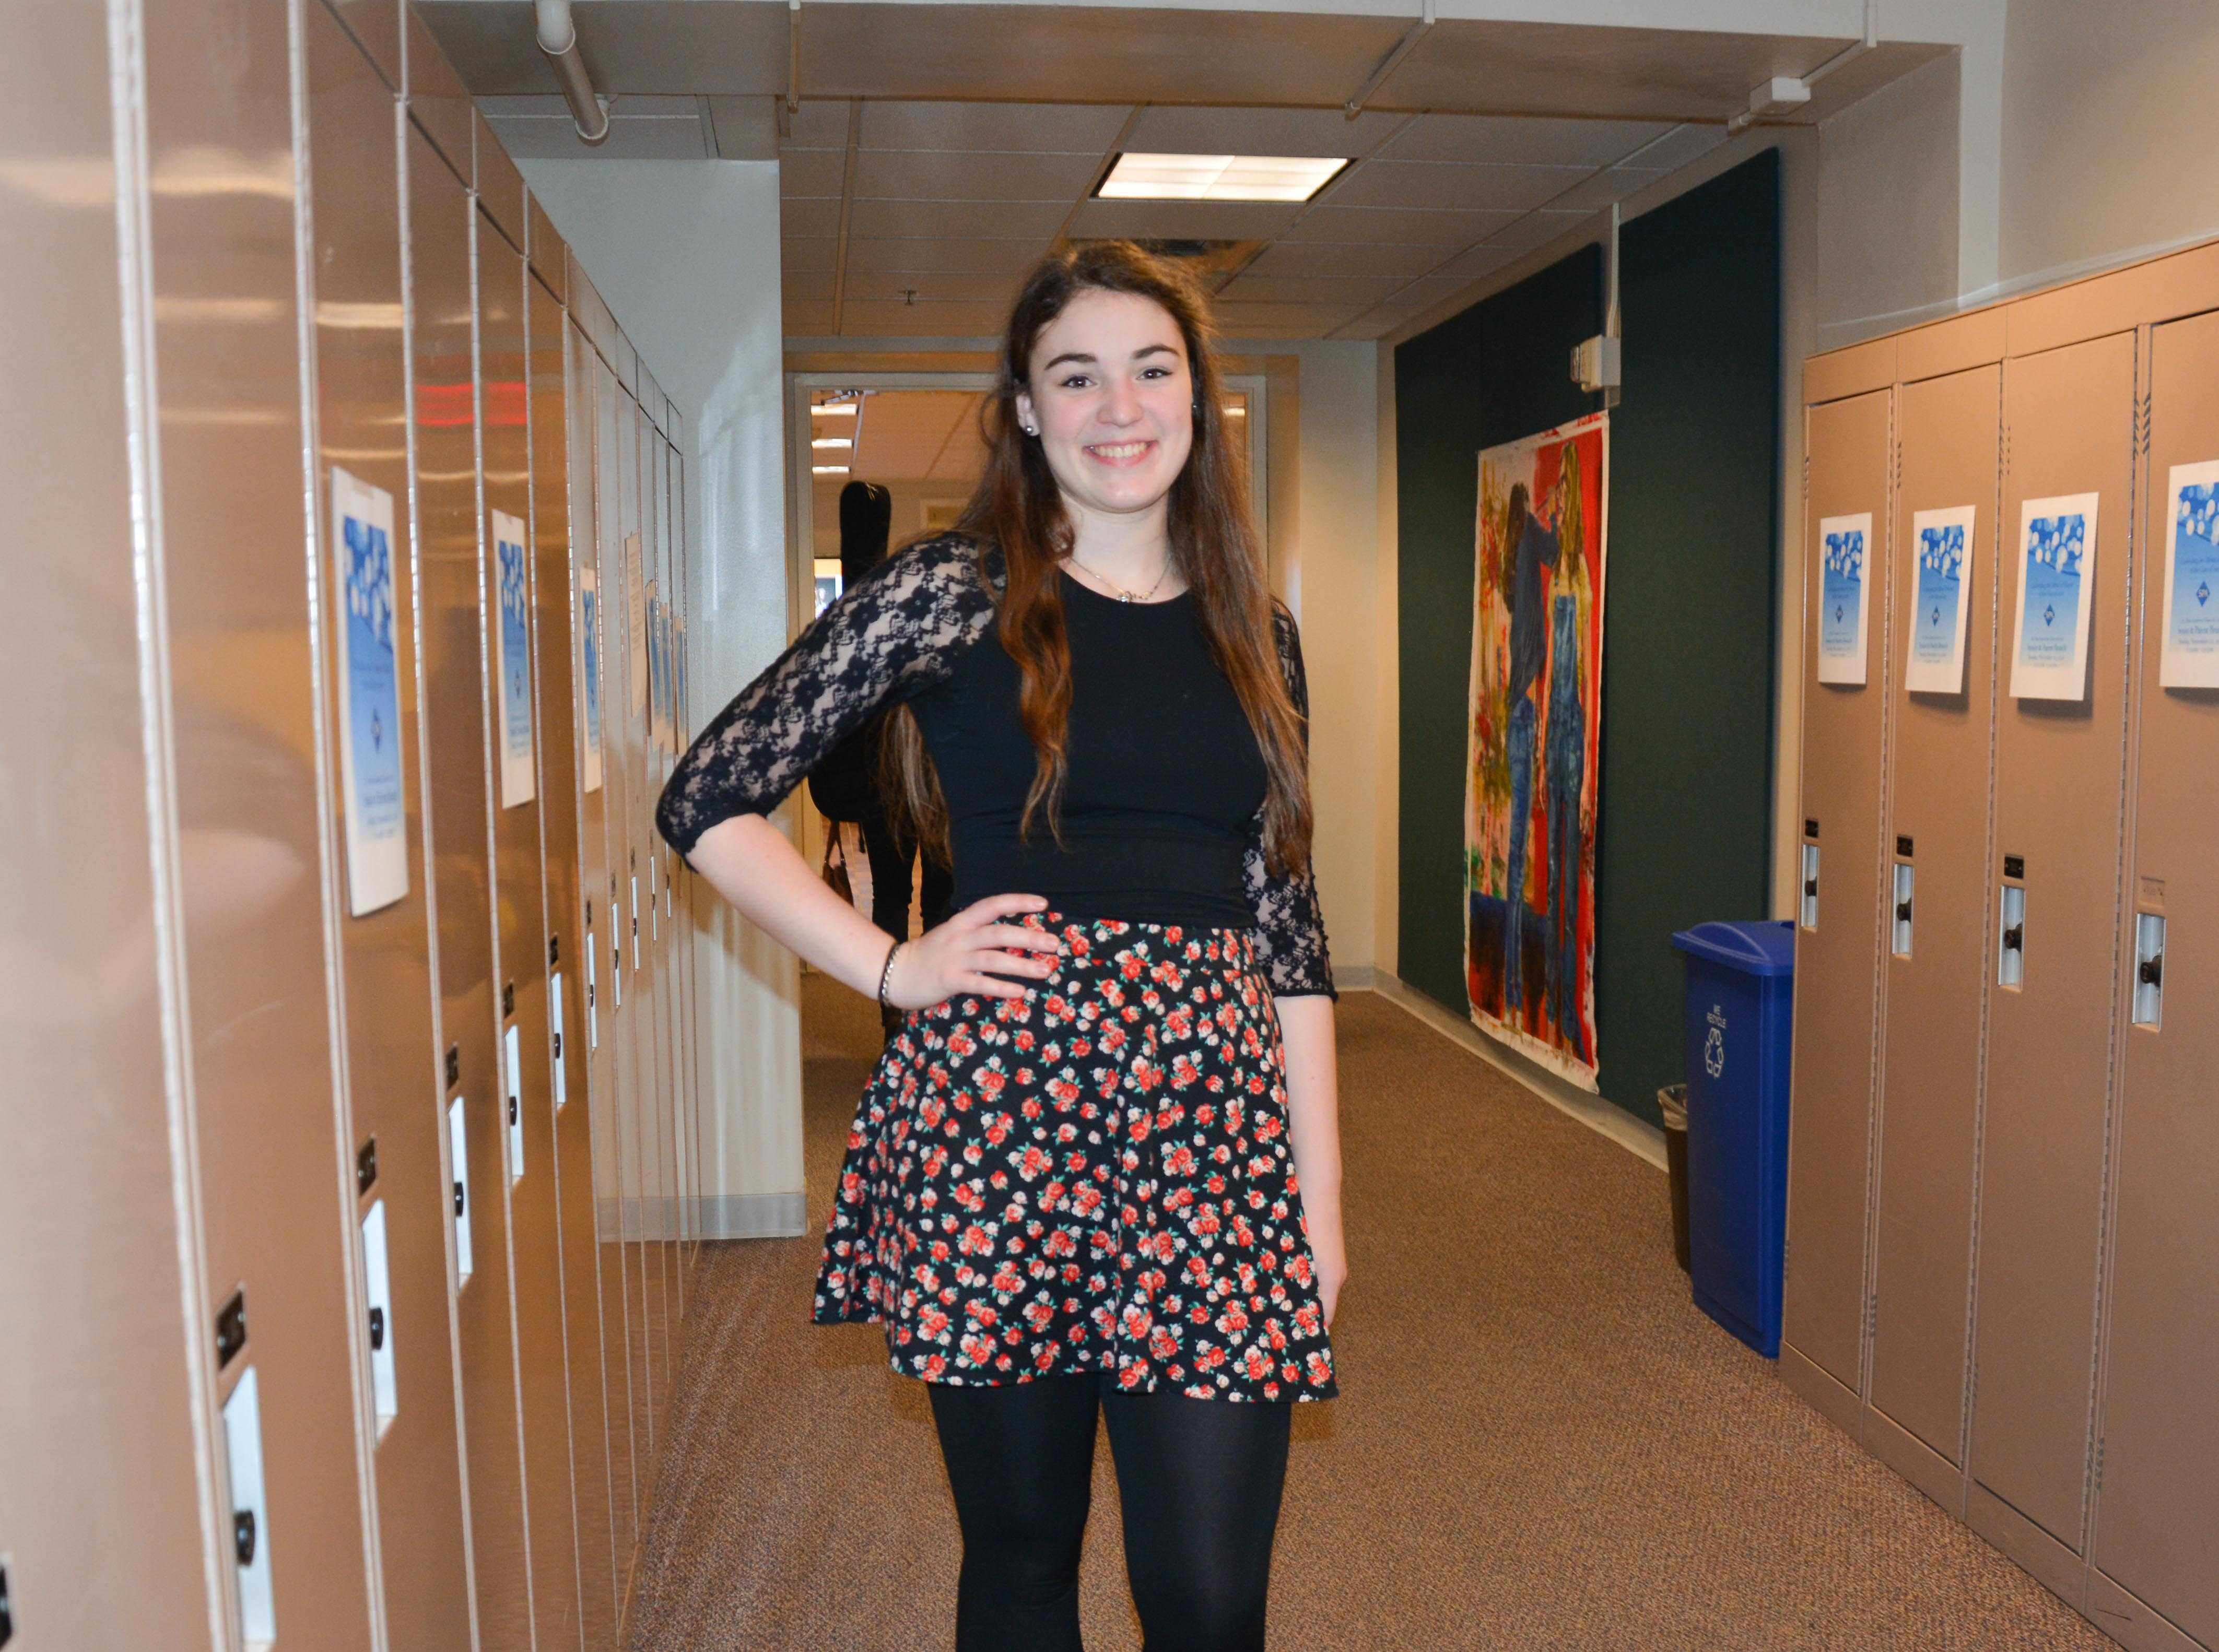 Senior Mary Grant selected her outfit she wore to her Senior Speech with care.